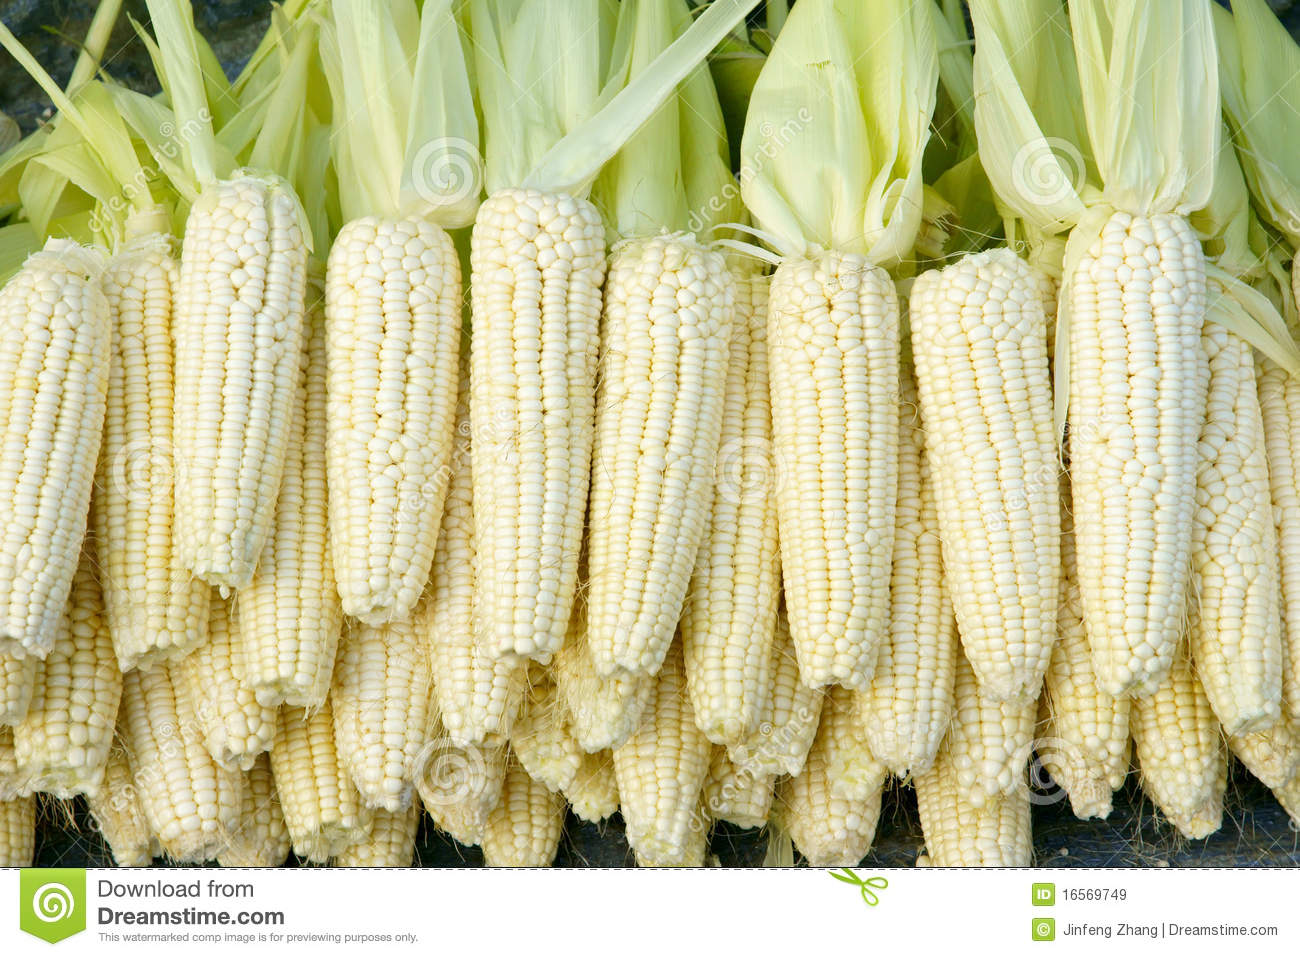 Maize stock photos download 44858 images tender maize cob many tender maize cobs are sold royalty free stock images voltagebd Image collections